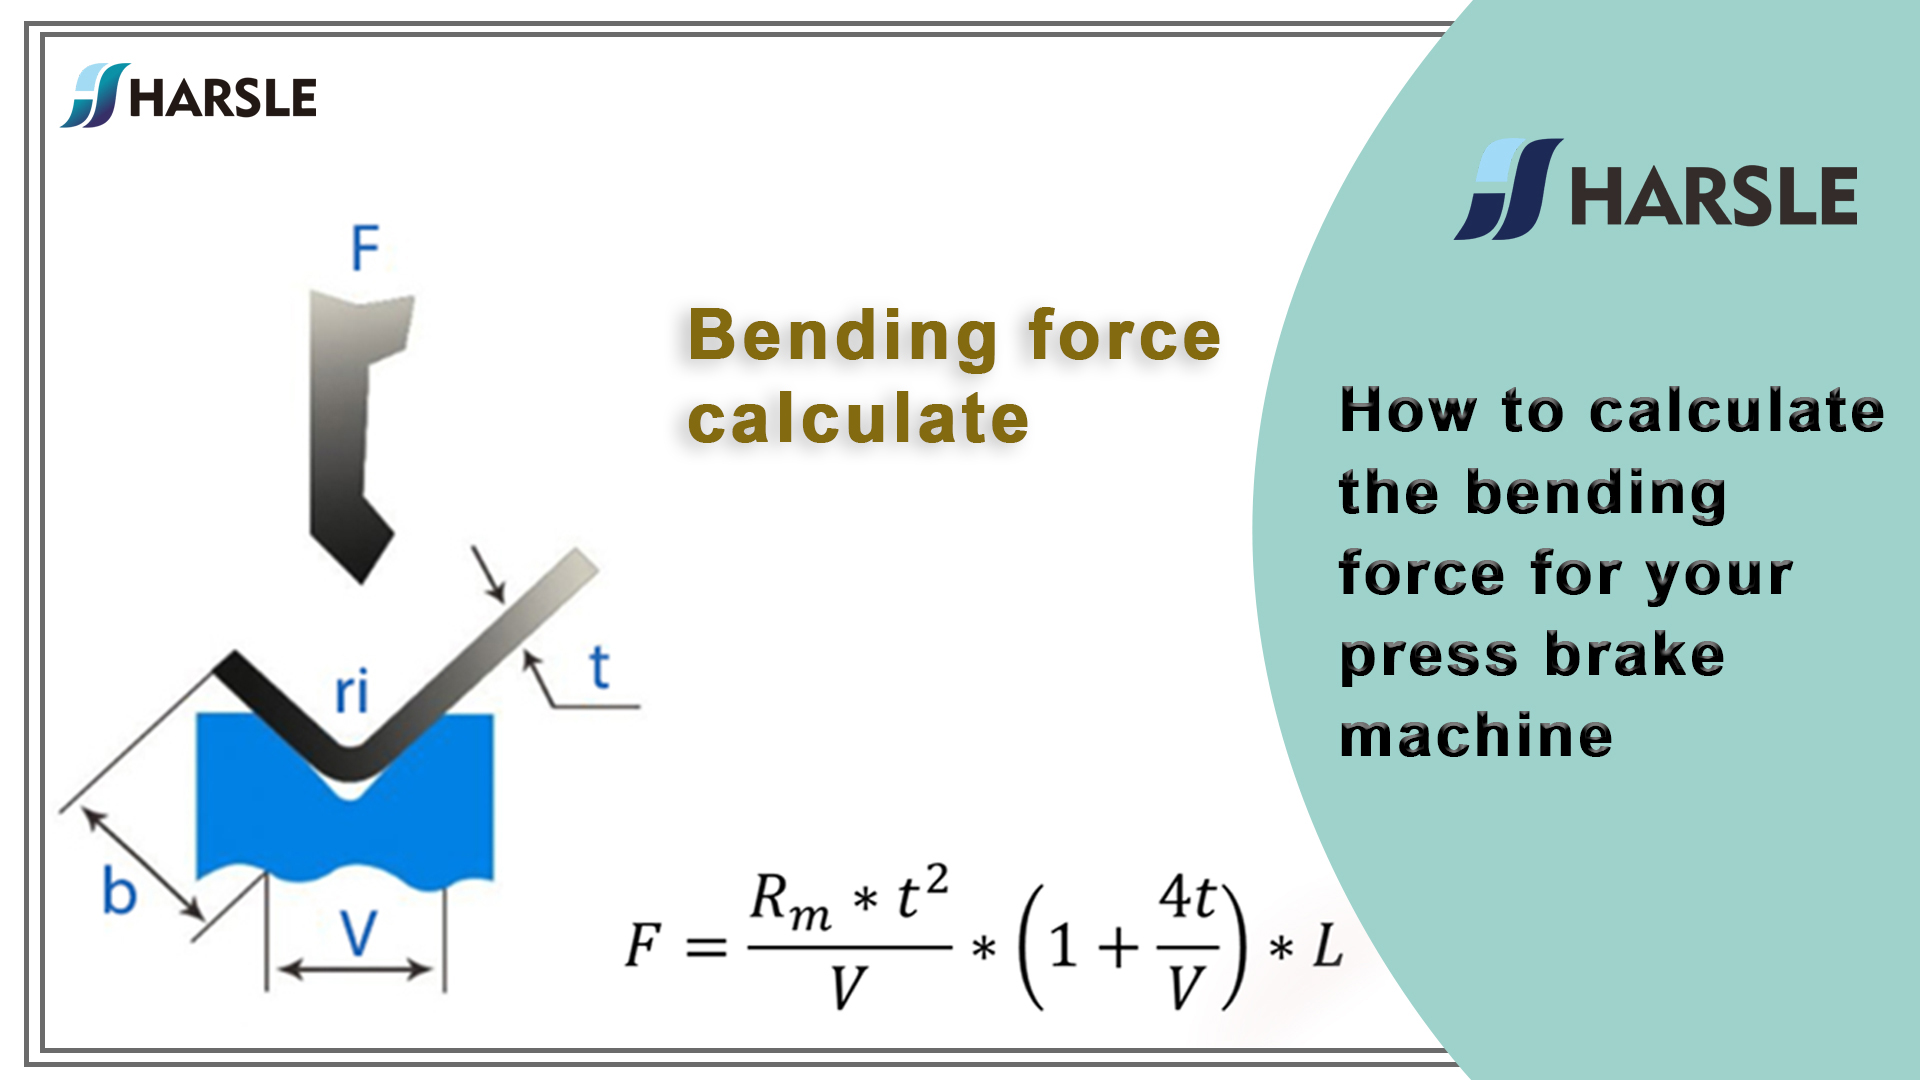 How to calculate the bending force for your press brake machine